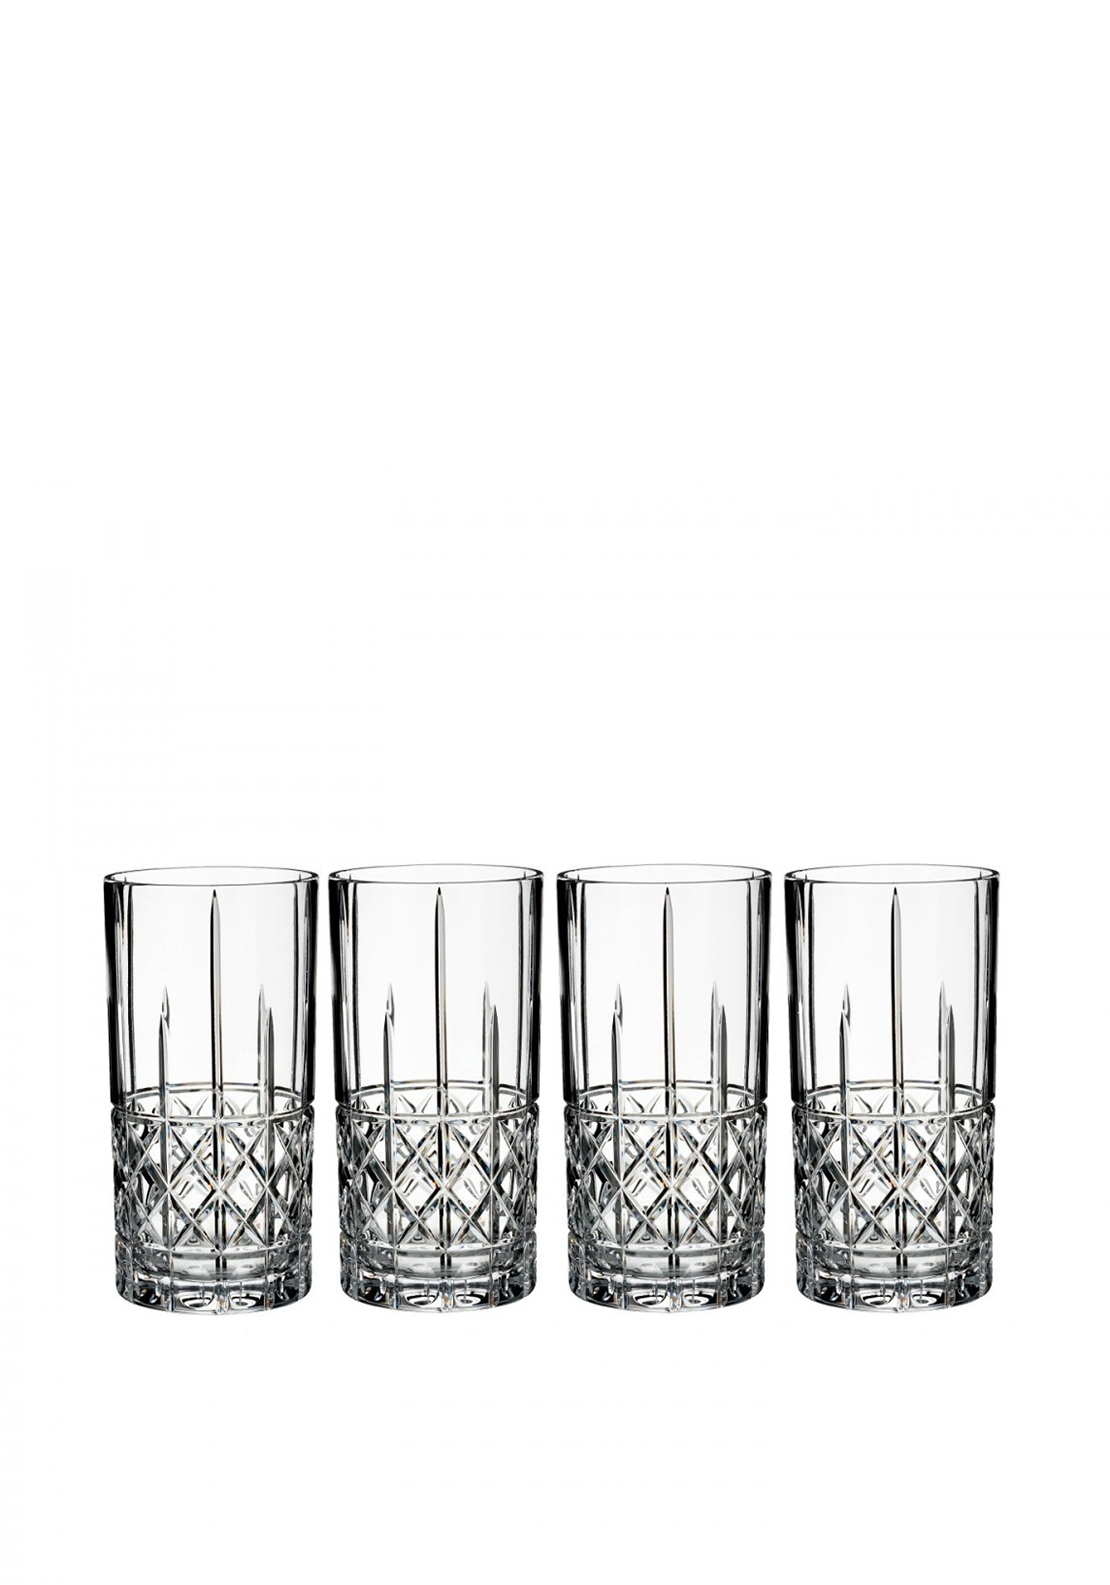 Marquis by Waterford Crystal Brady Hi Ball Glasses, Set of 4